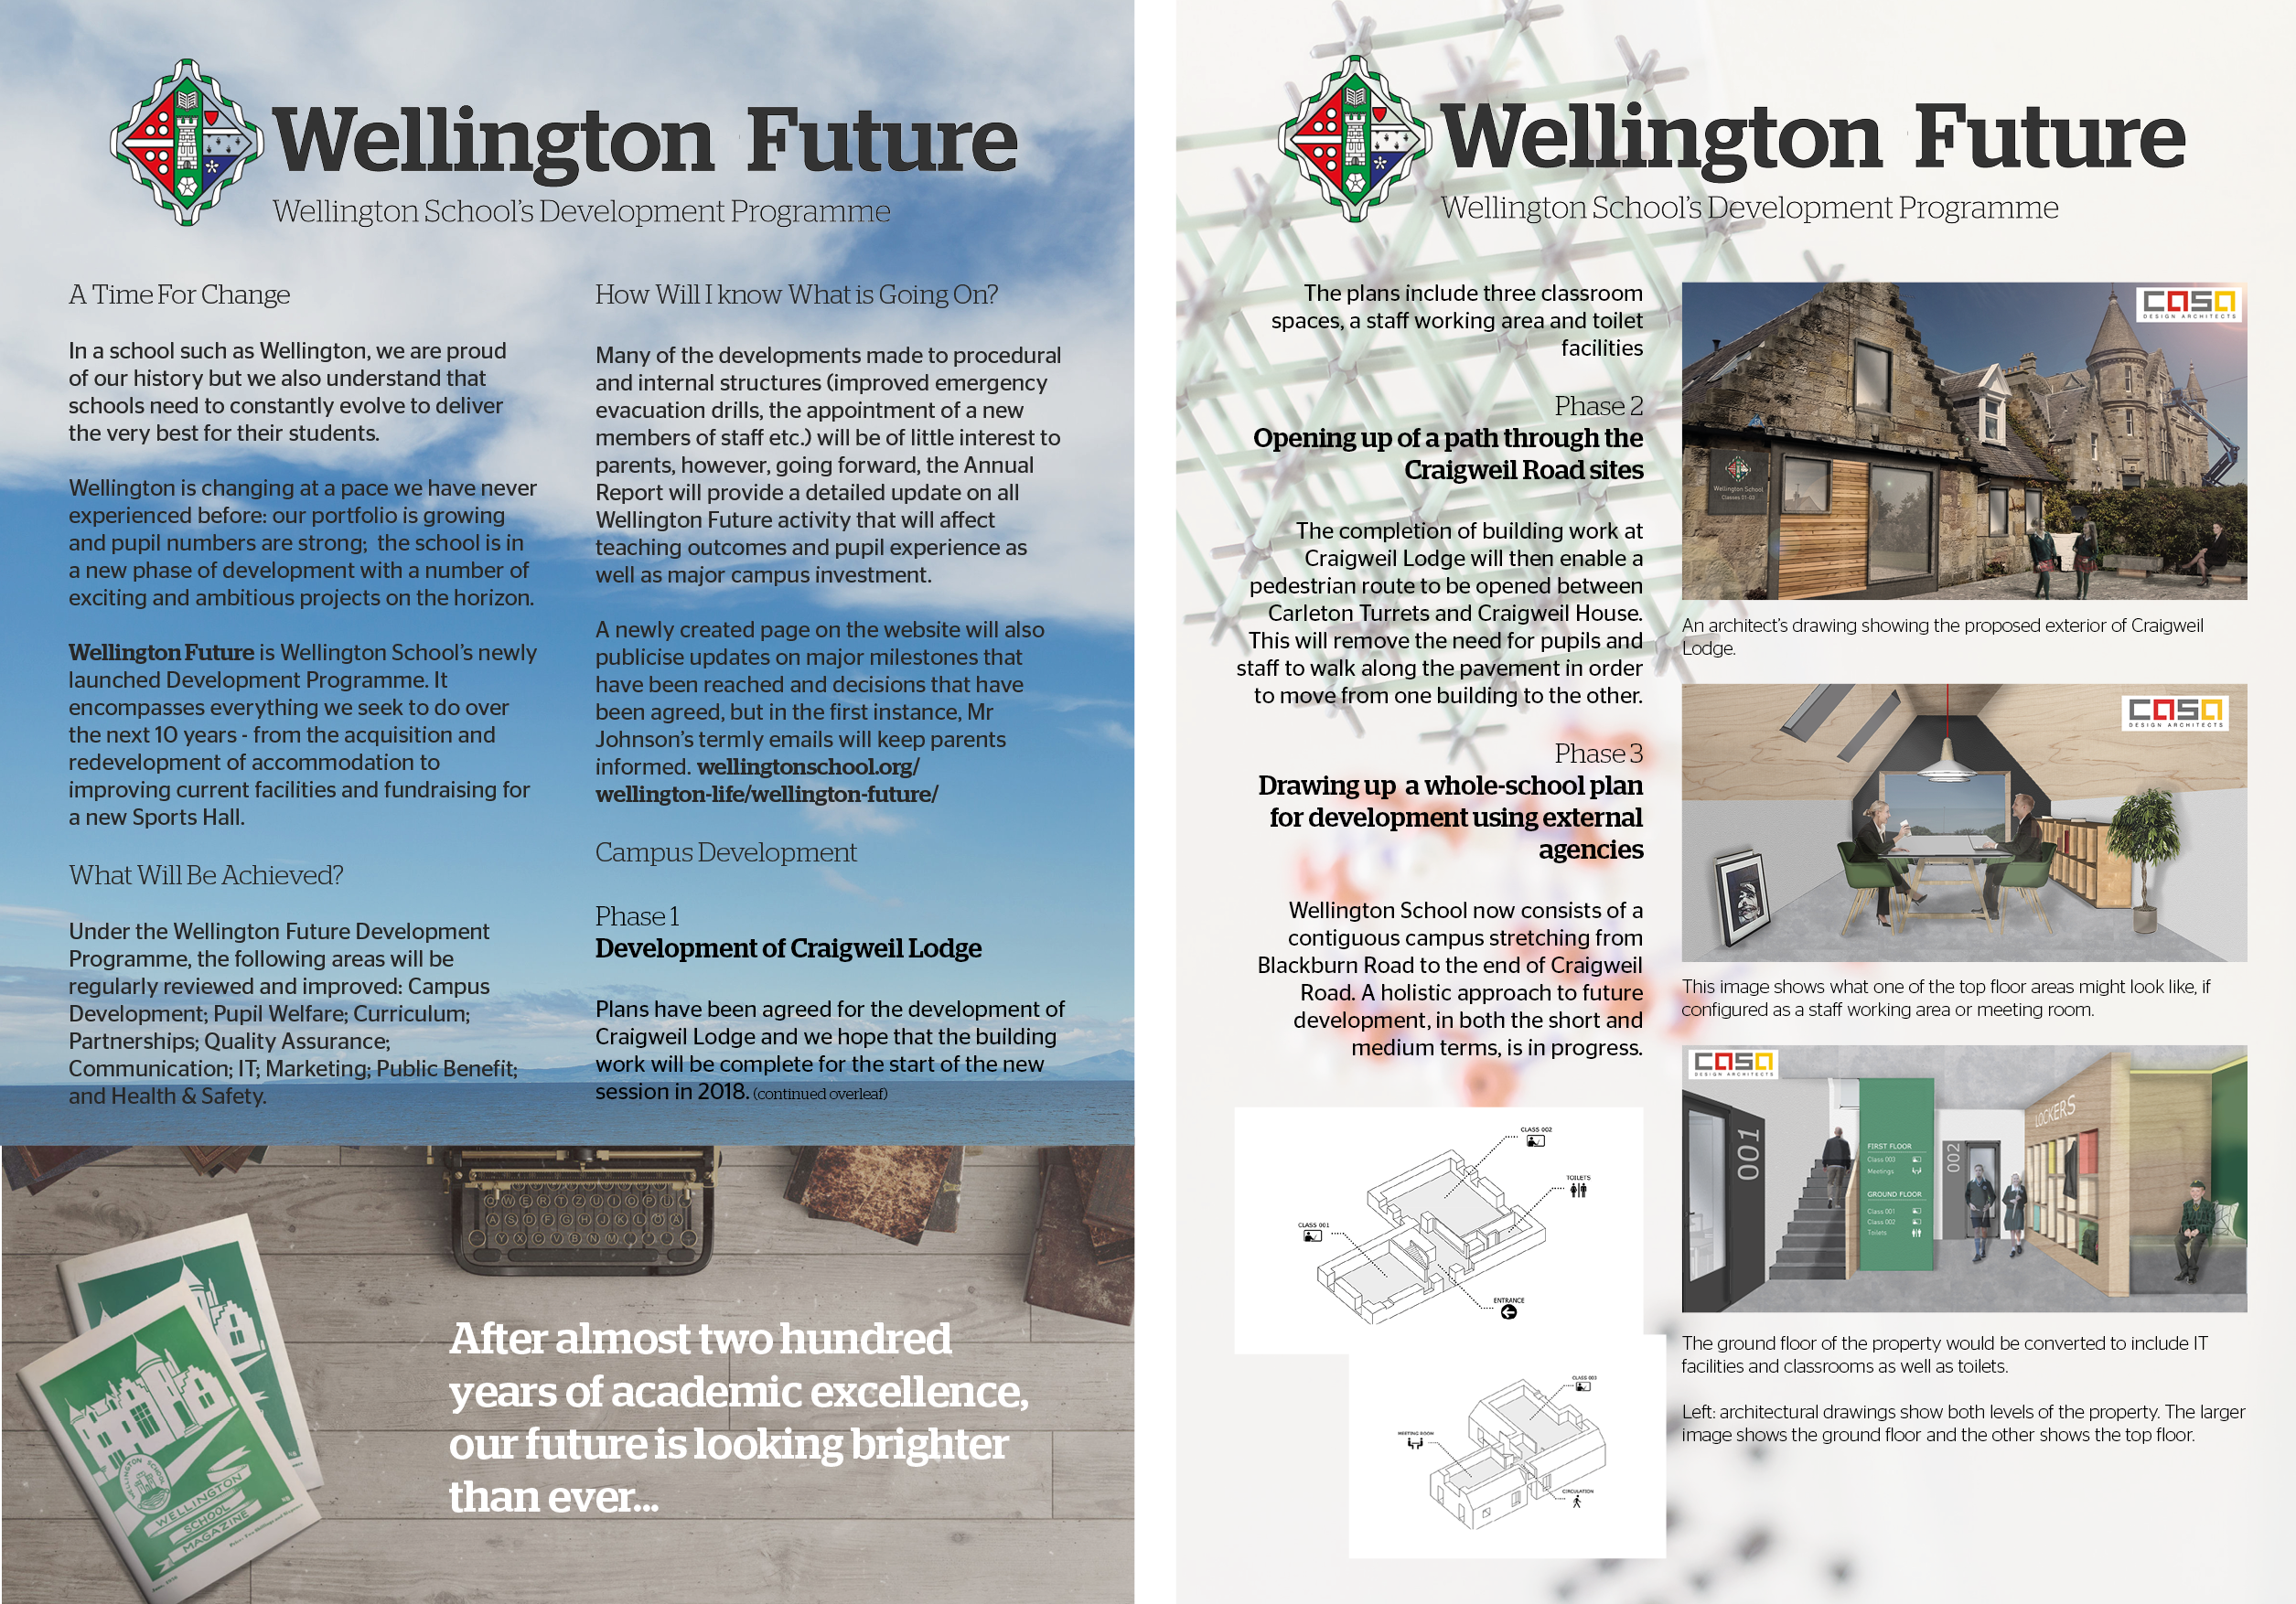 wellington-future-web-content-1